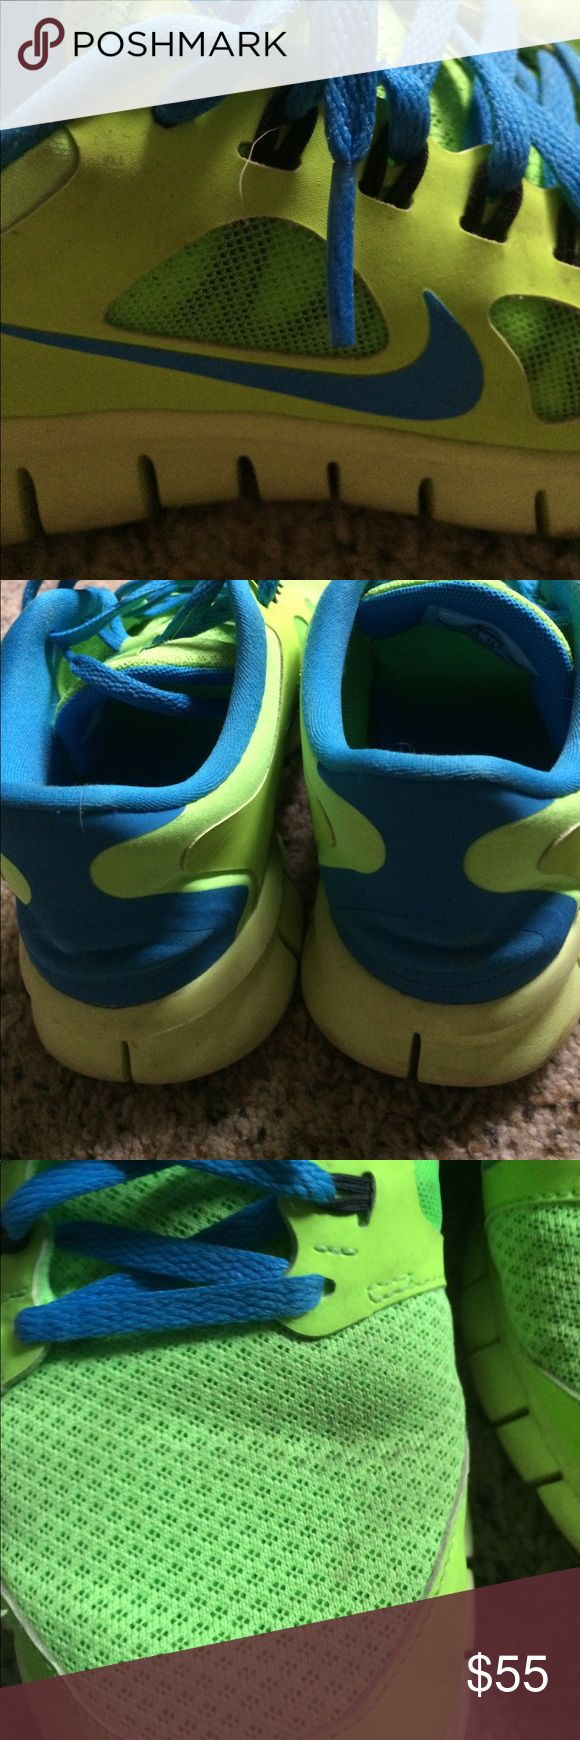 Nike Neon Running Shoes Neon Green and Turquoise Nike  youth size 6 (womens 7.5) slightly used, just that one spot as pictured. Great running shoes, just looking to downsize my collection Nike Shoes Sneakers